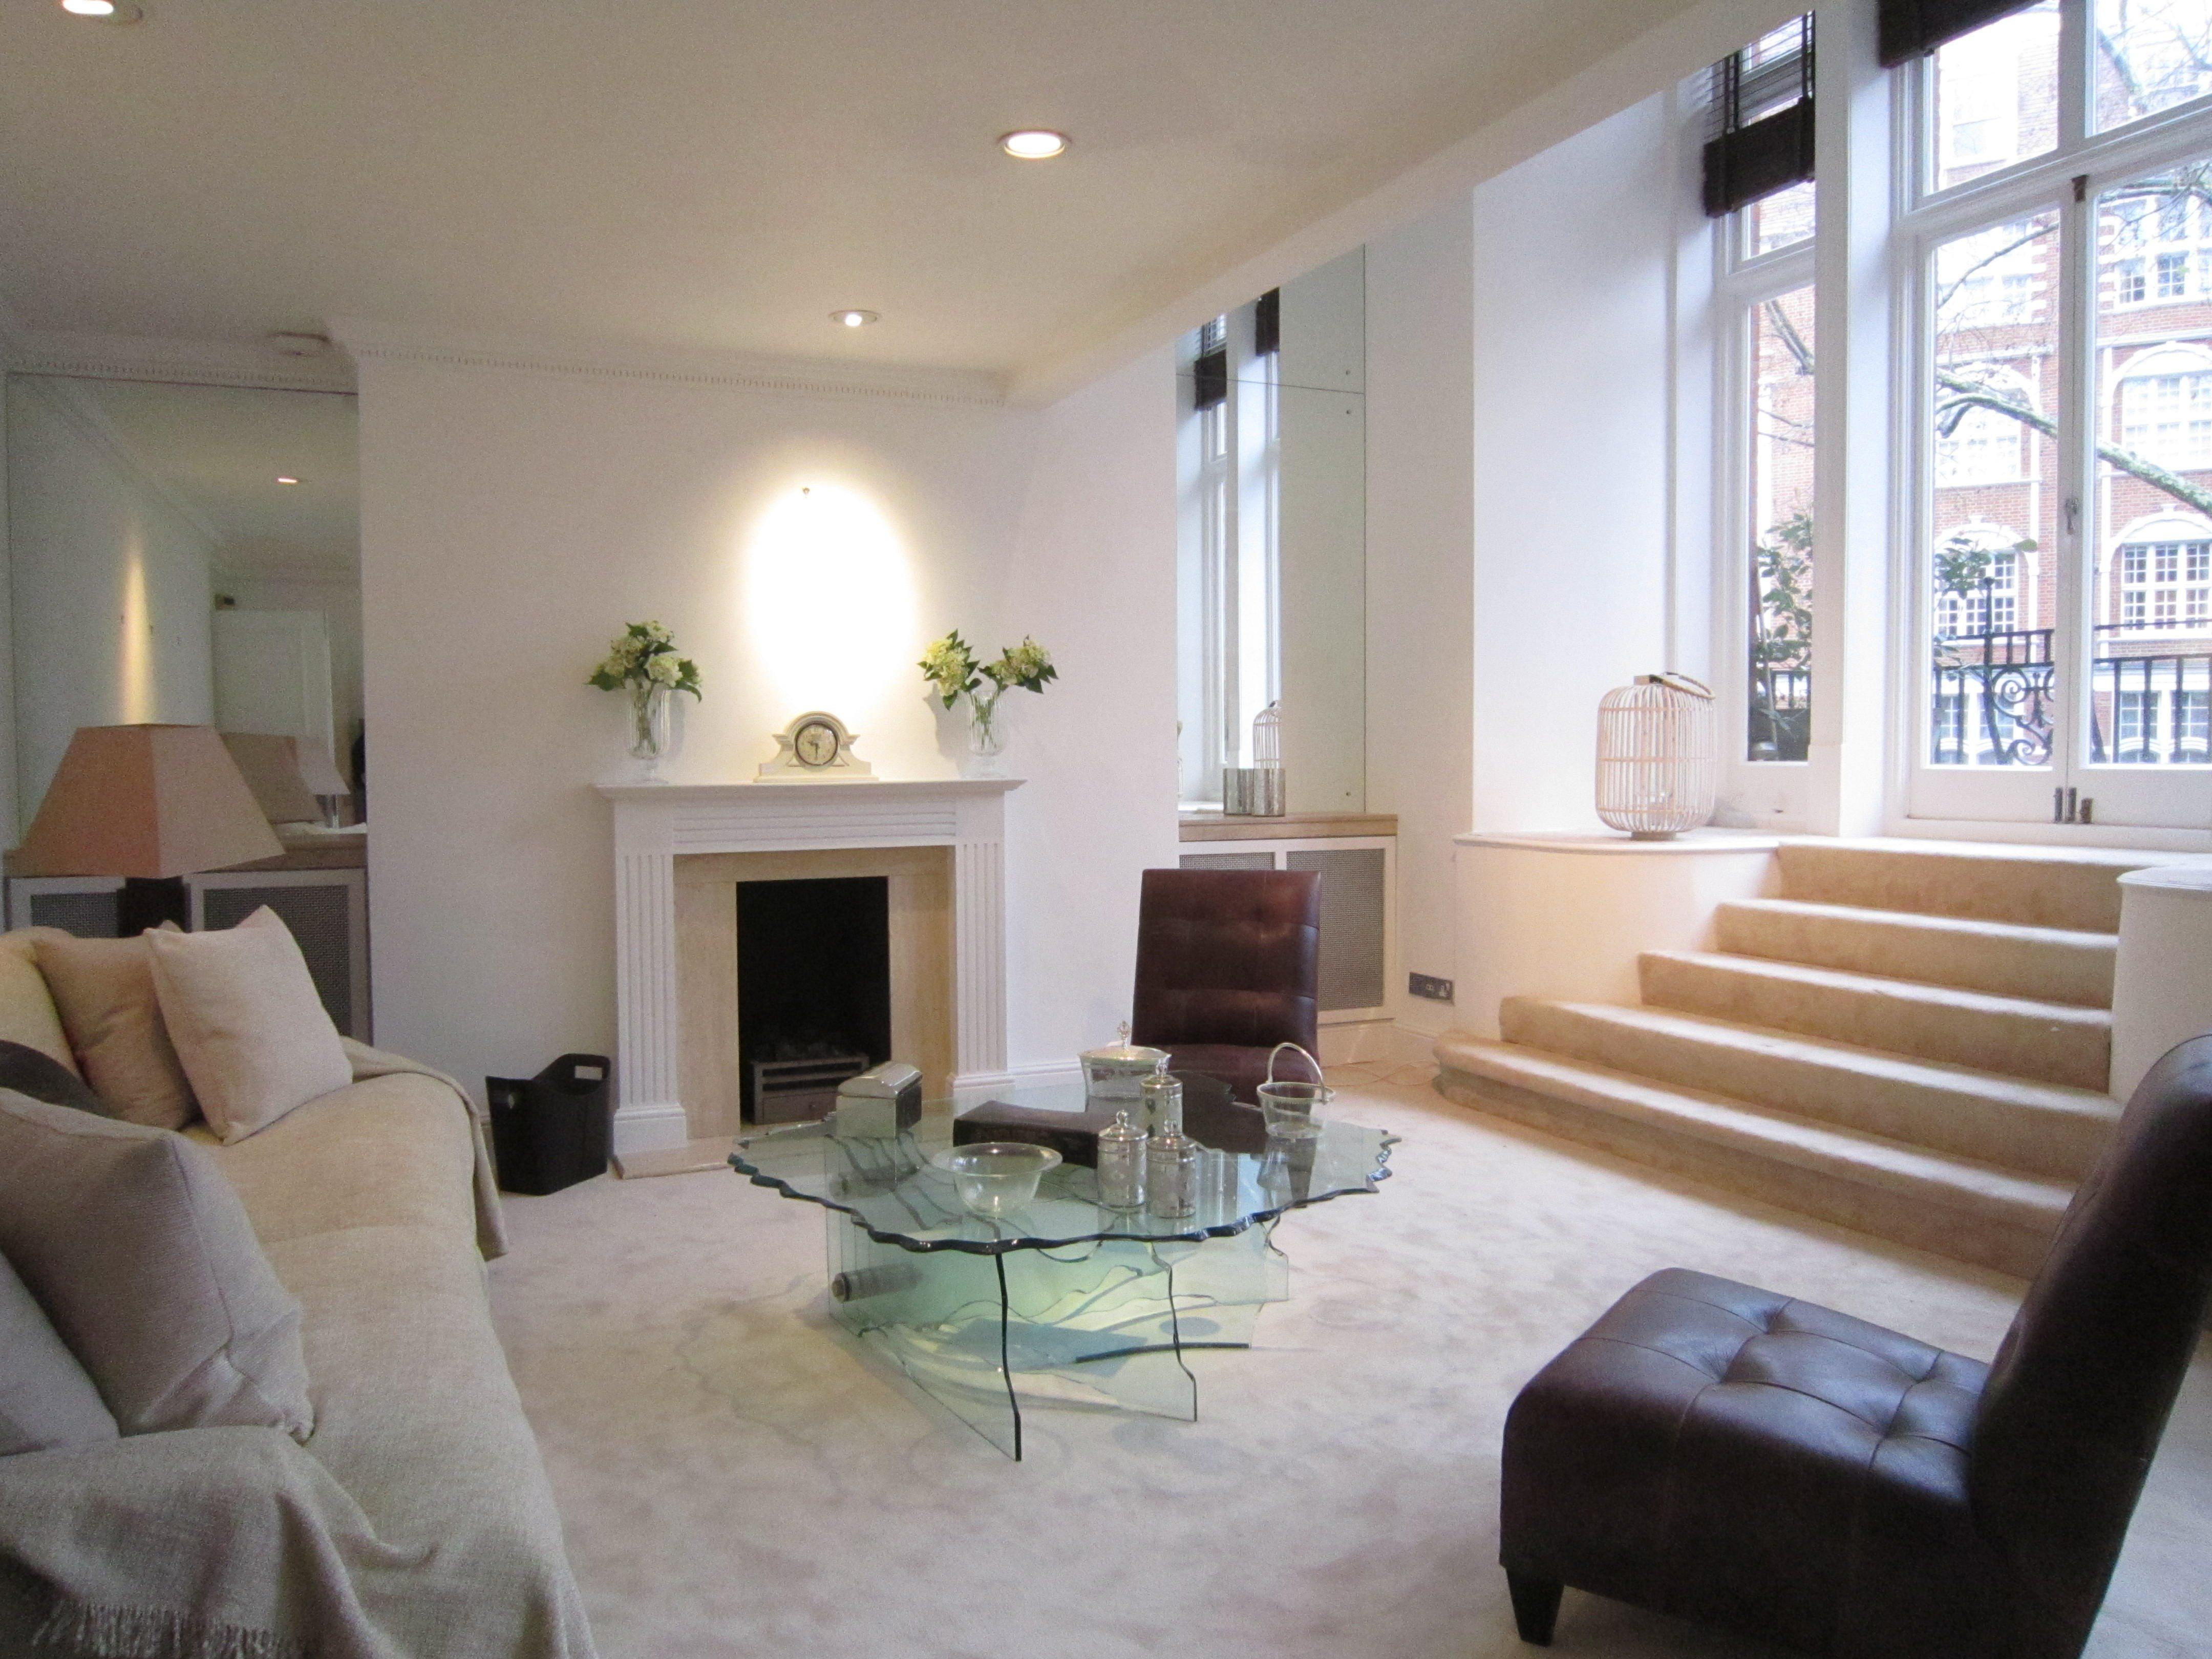 A Look Inside Luxury Flats Overseas Students Are Spending £600 Million To Rent cadogan gardens reception room